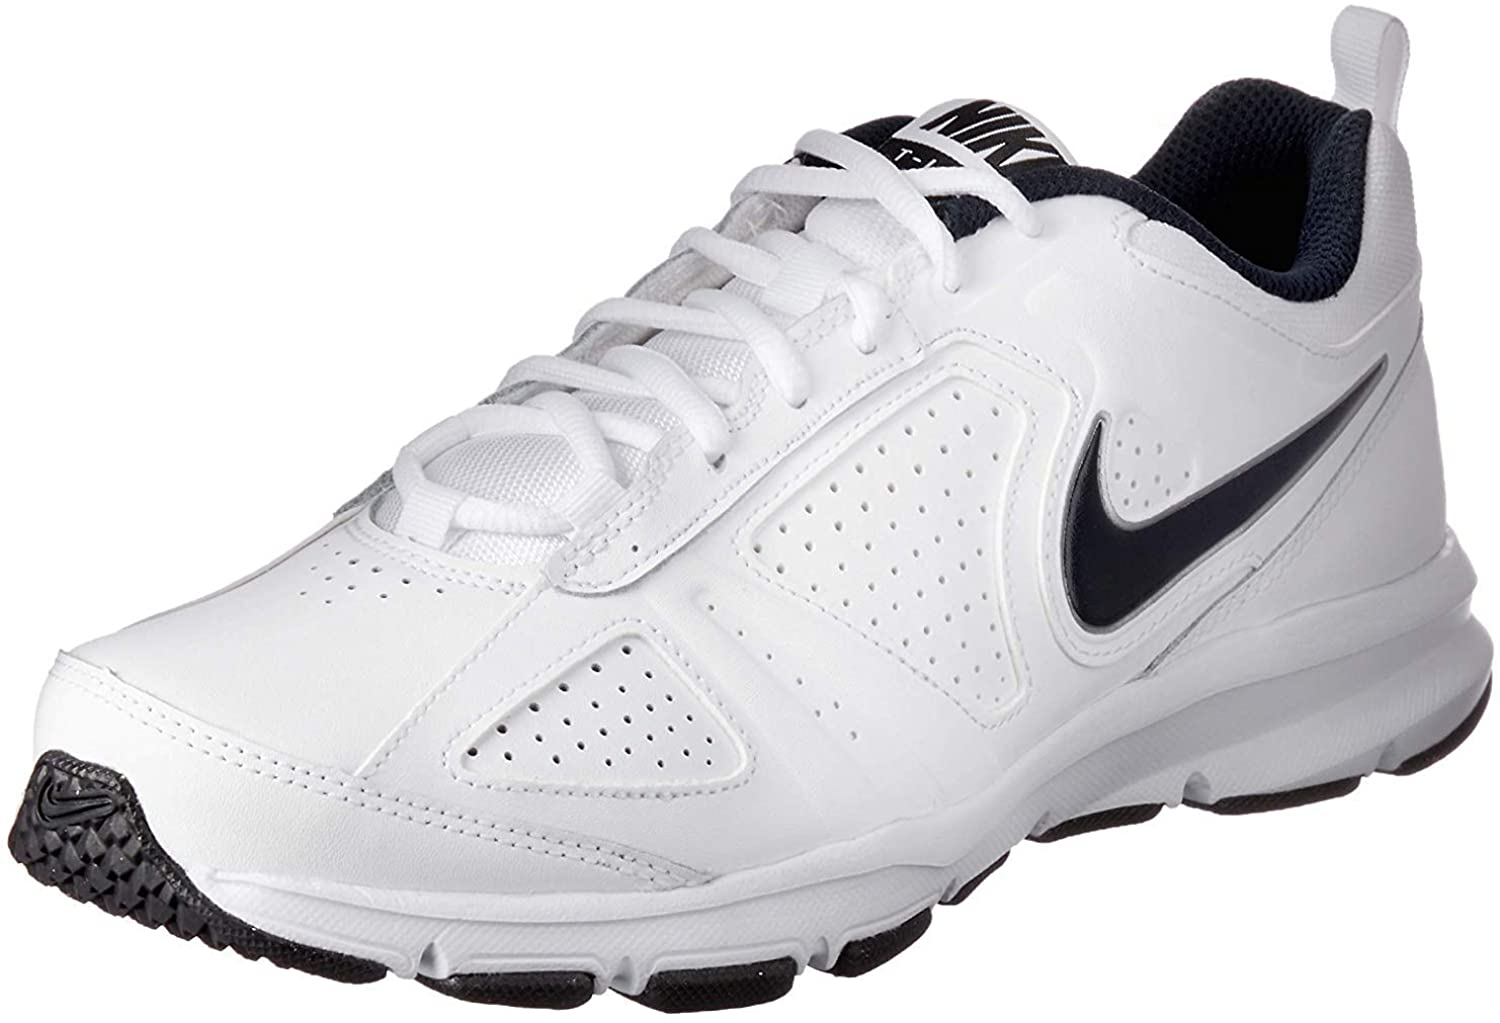 Nike T-Lite Xi Mens Running Trainers 616544 Sneakers Shoes